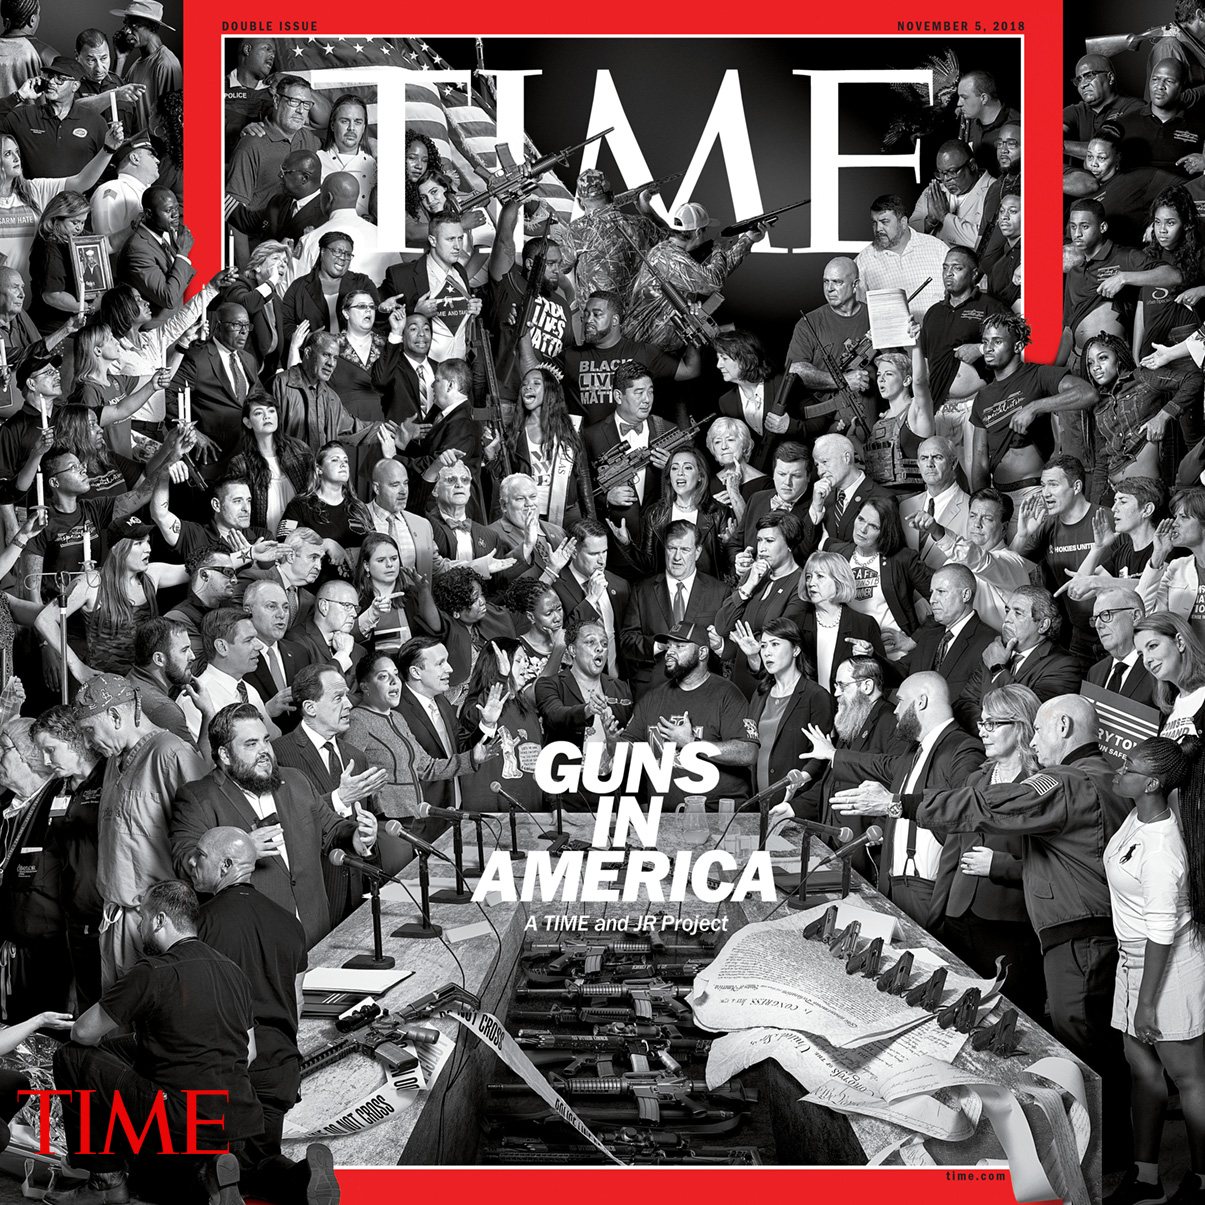 TIME: Guns In America{SMT portion of project} - Time Magazine | Interview